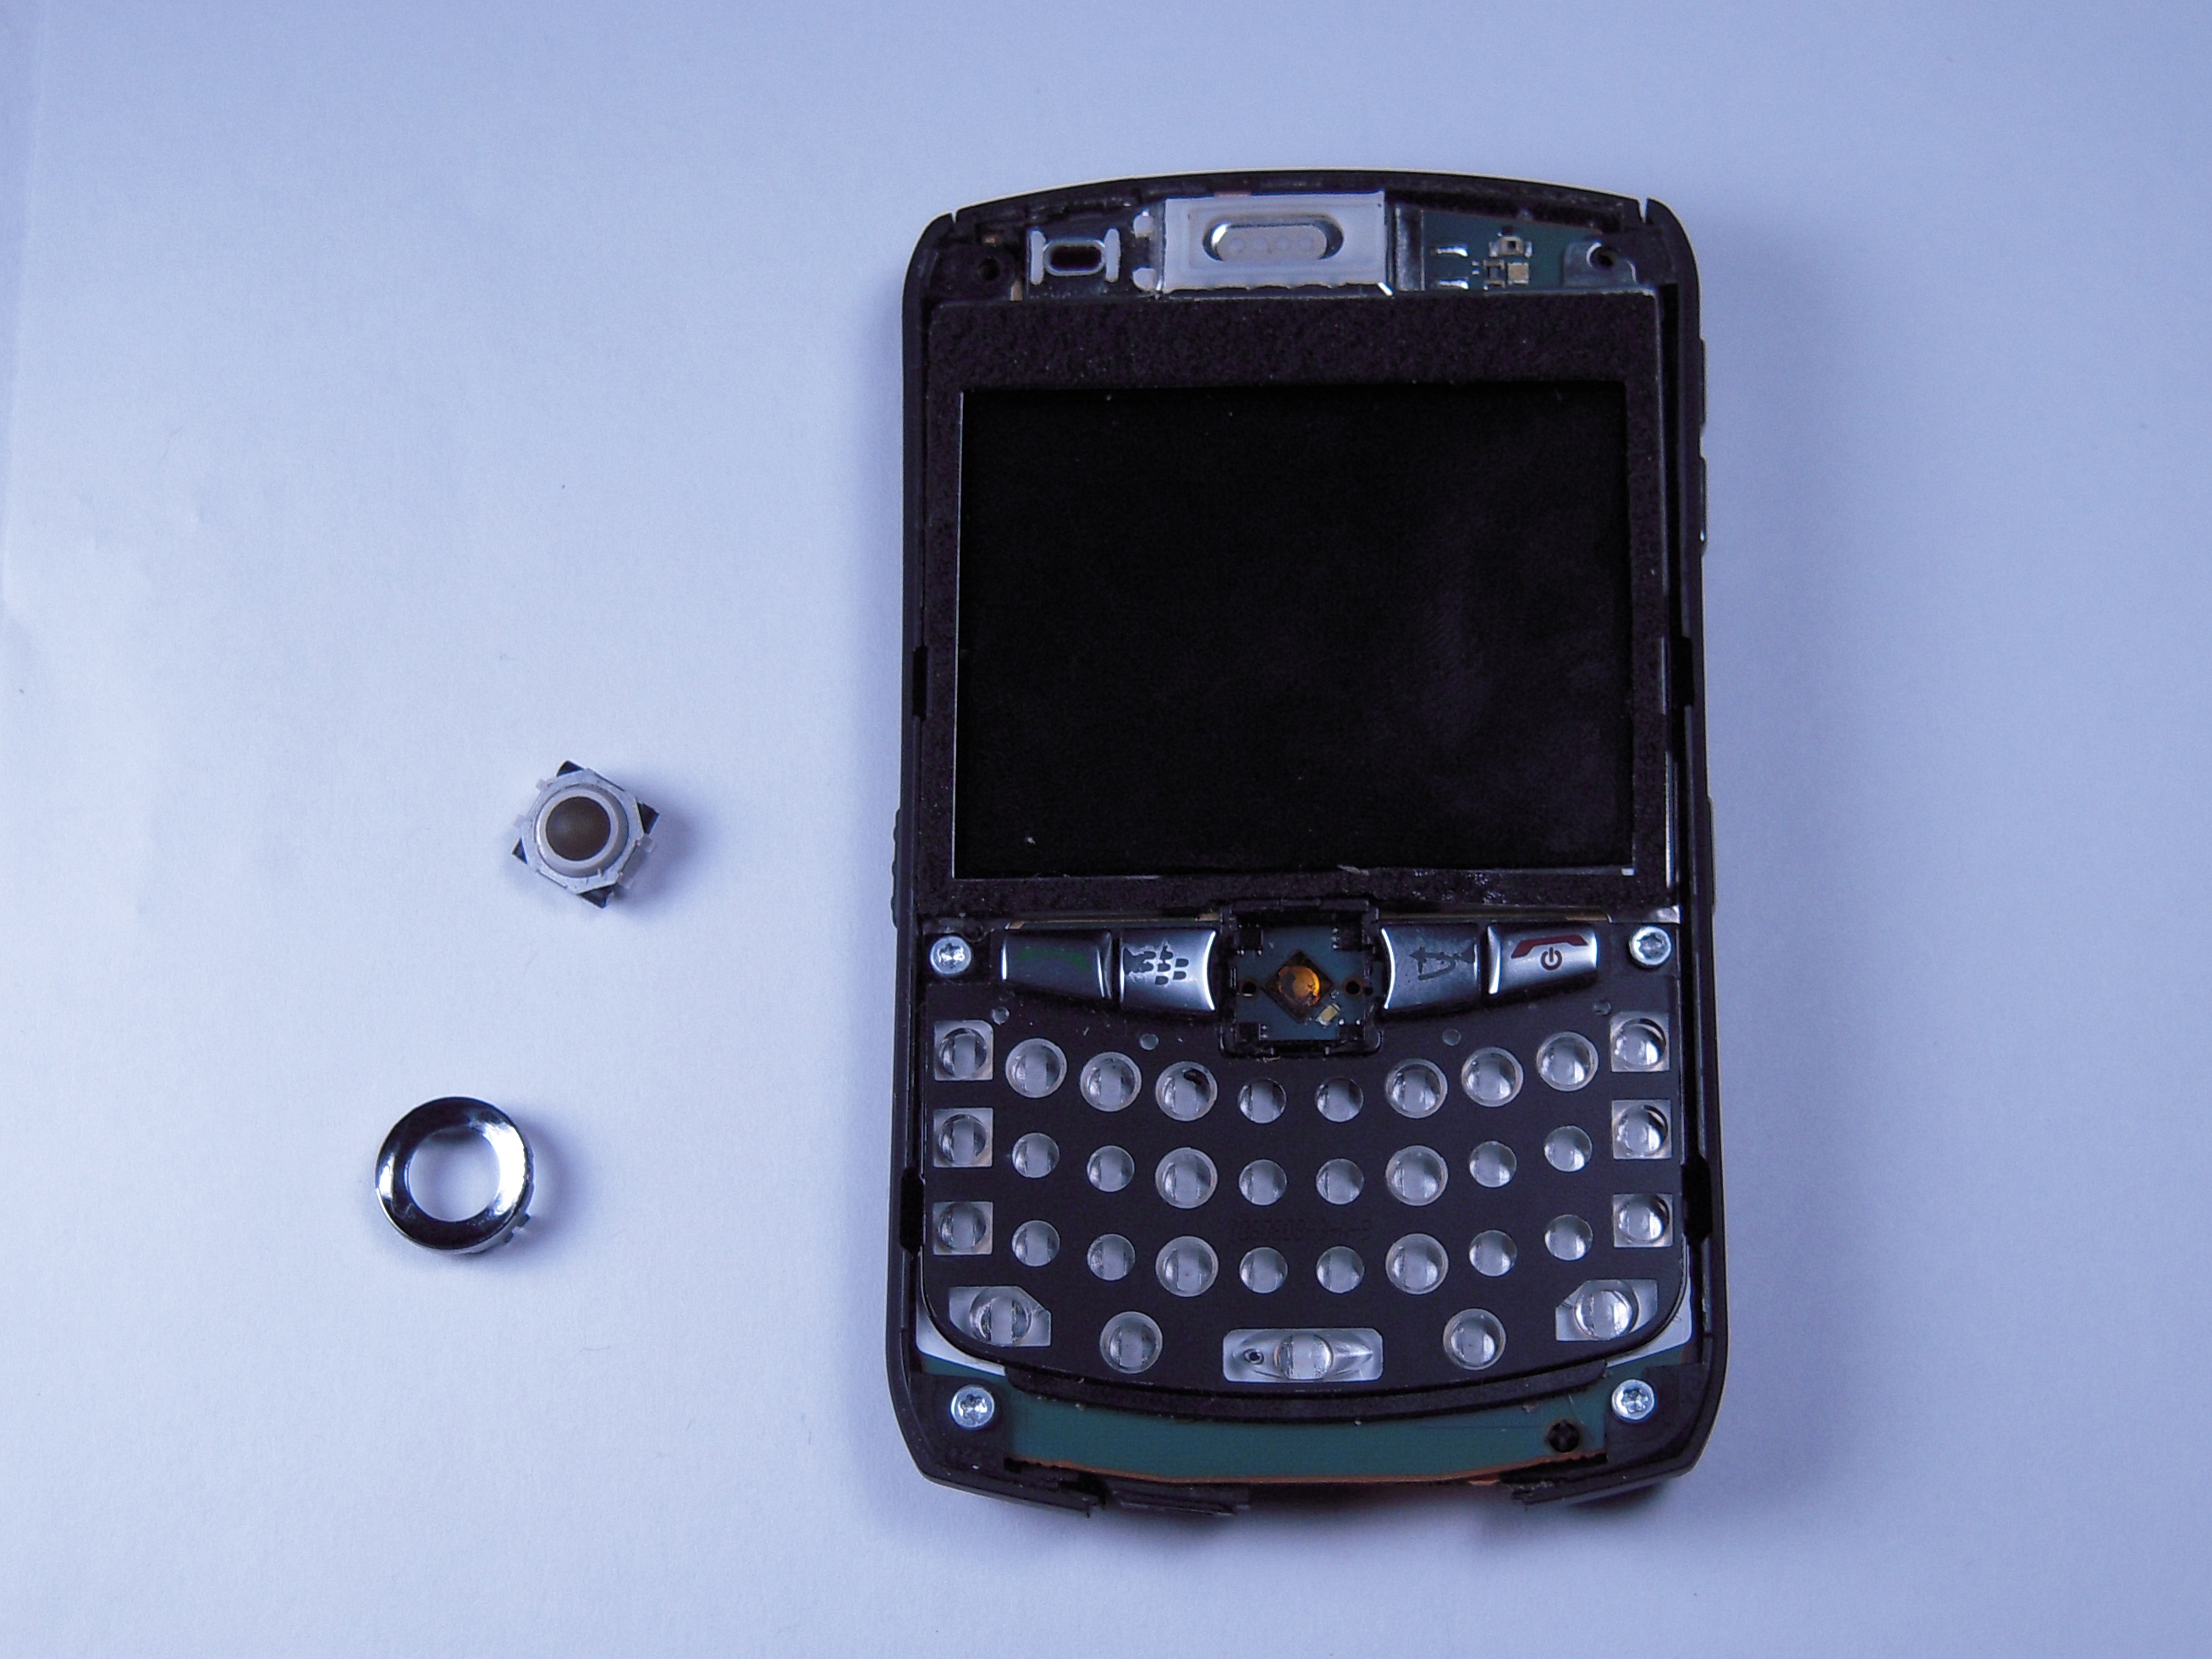 blackberry curve 8310 repair ifixit rh ifixit com BlackBerry Curve 9300 BlackBerry Curve 9300